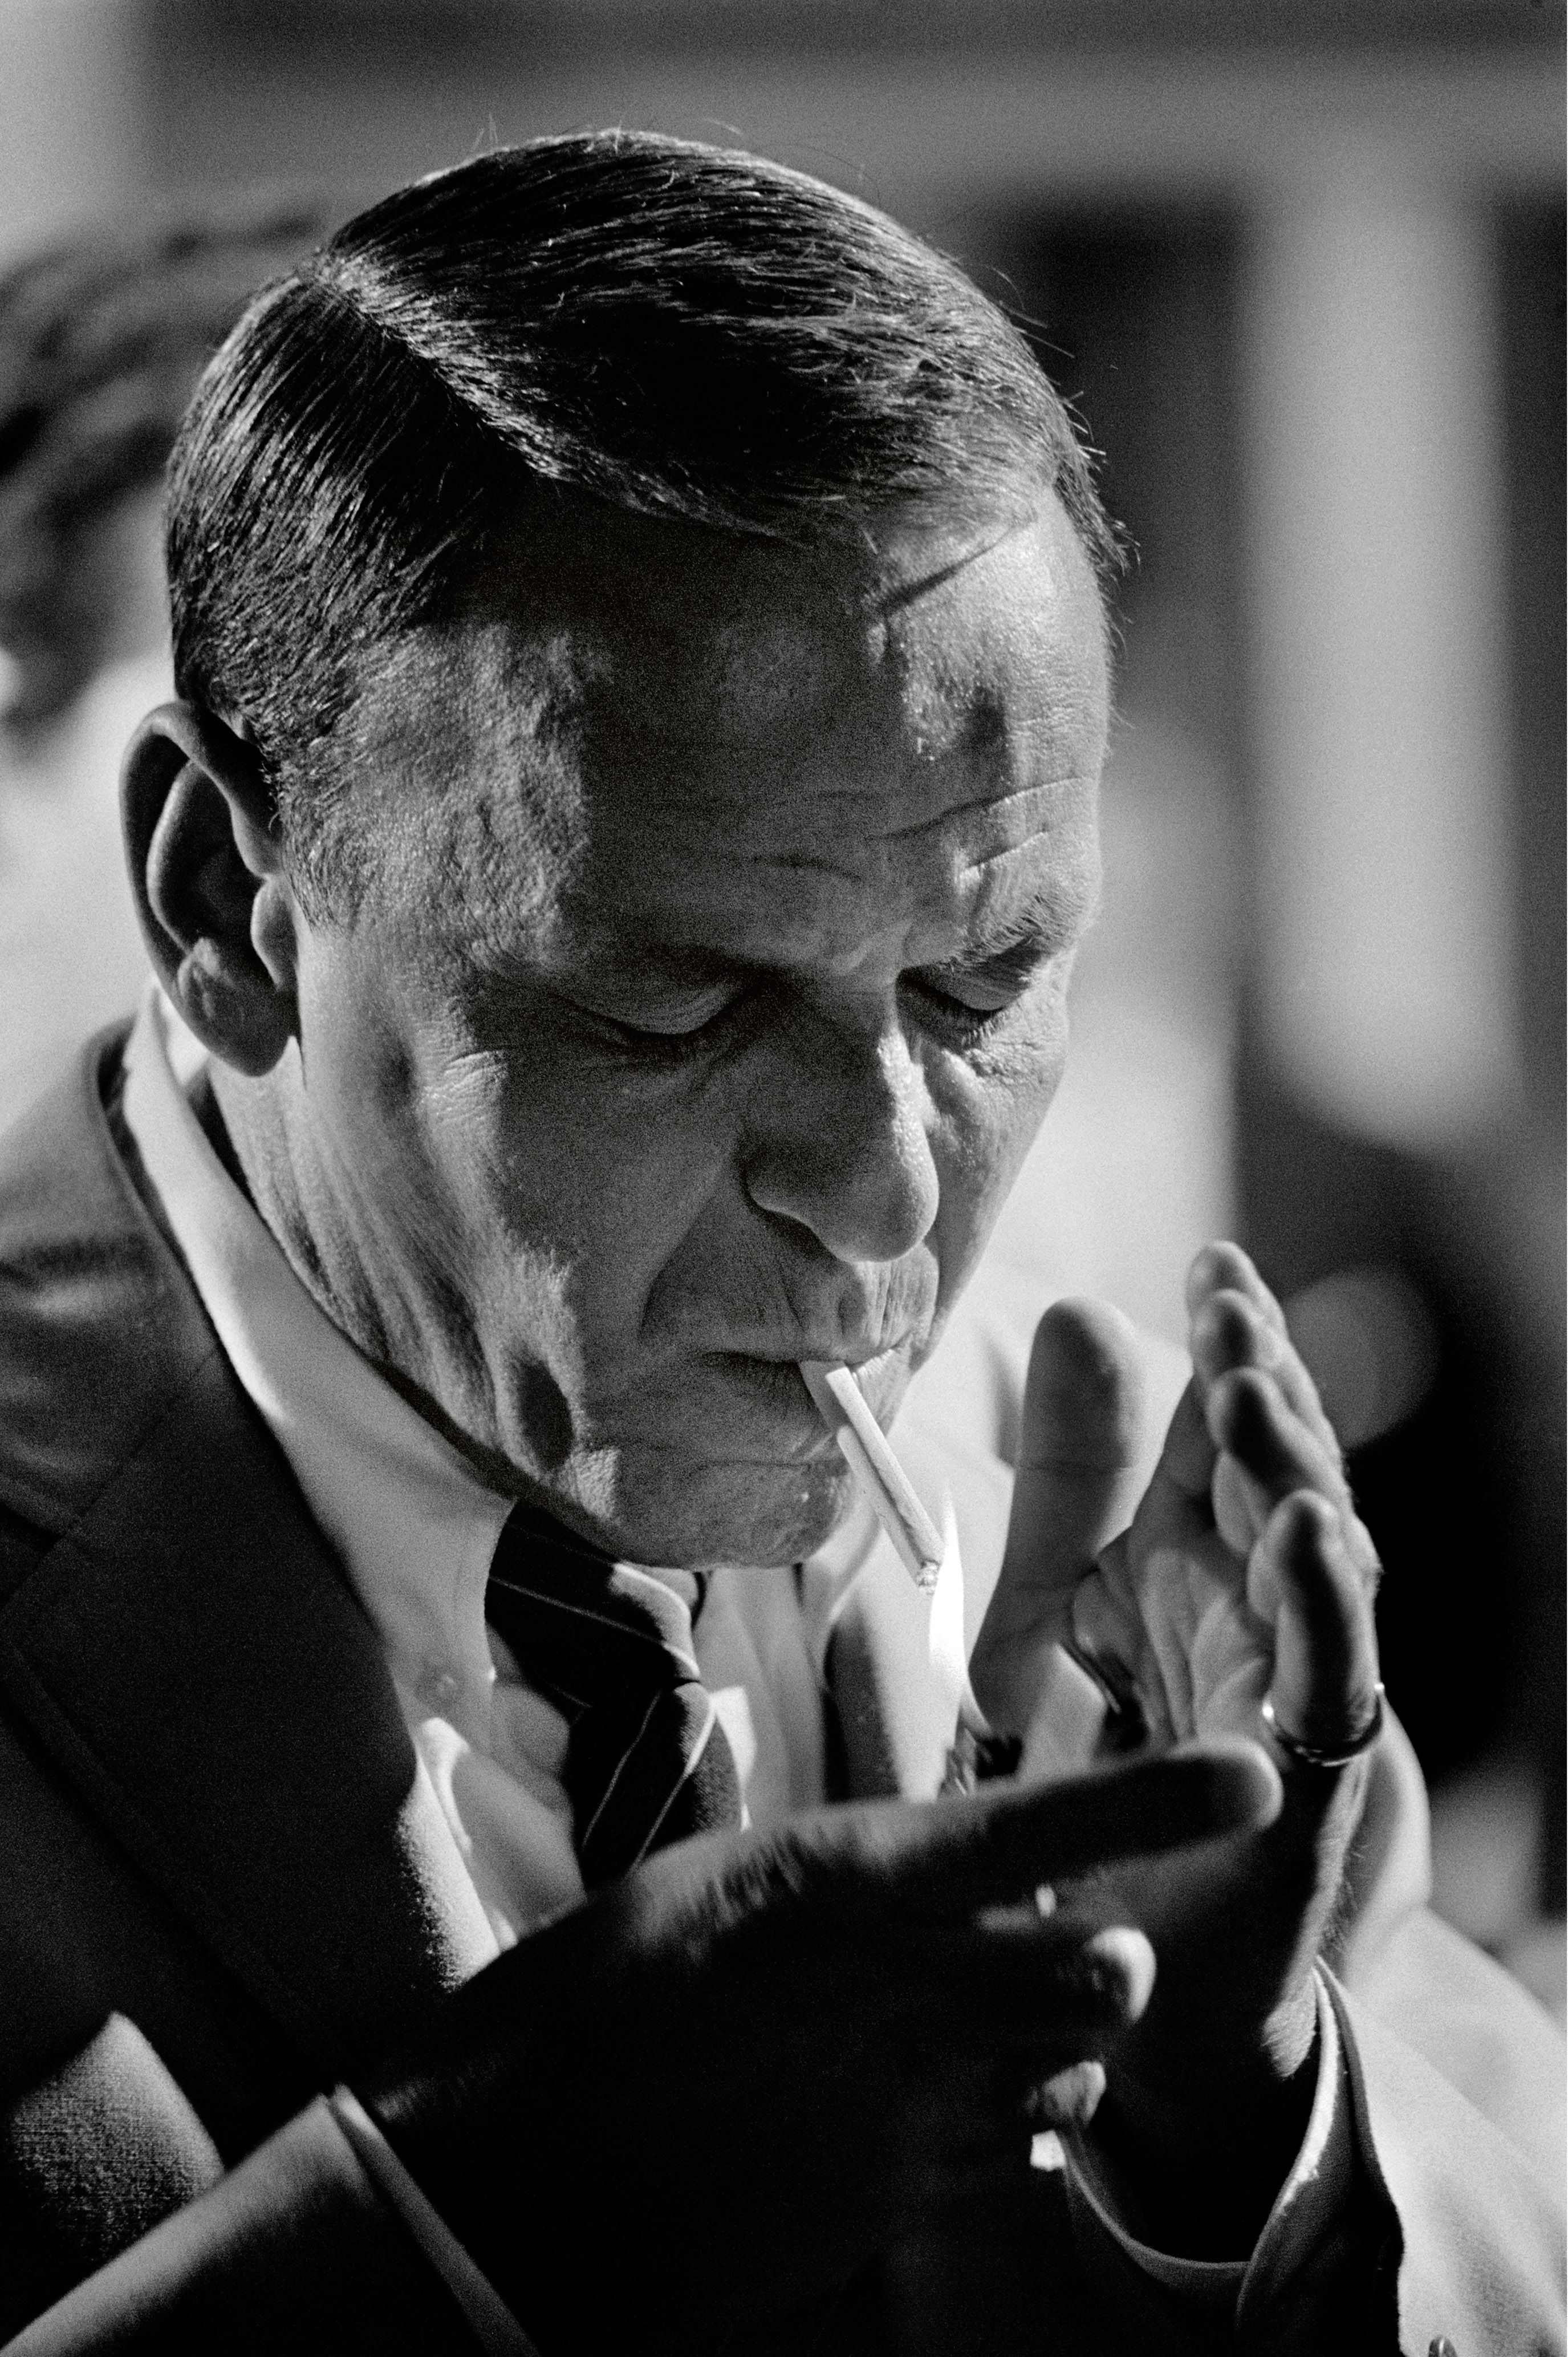 Terry O'Neill (British, b.1938) Frank Sinatra Smoking, Miami, 1968 Terry  O'Neill is best known for his celebrity portraits